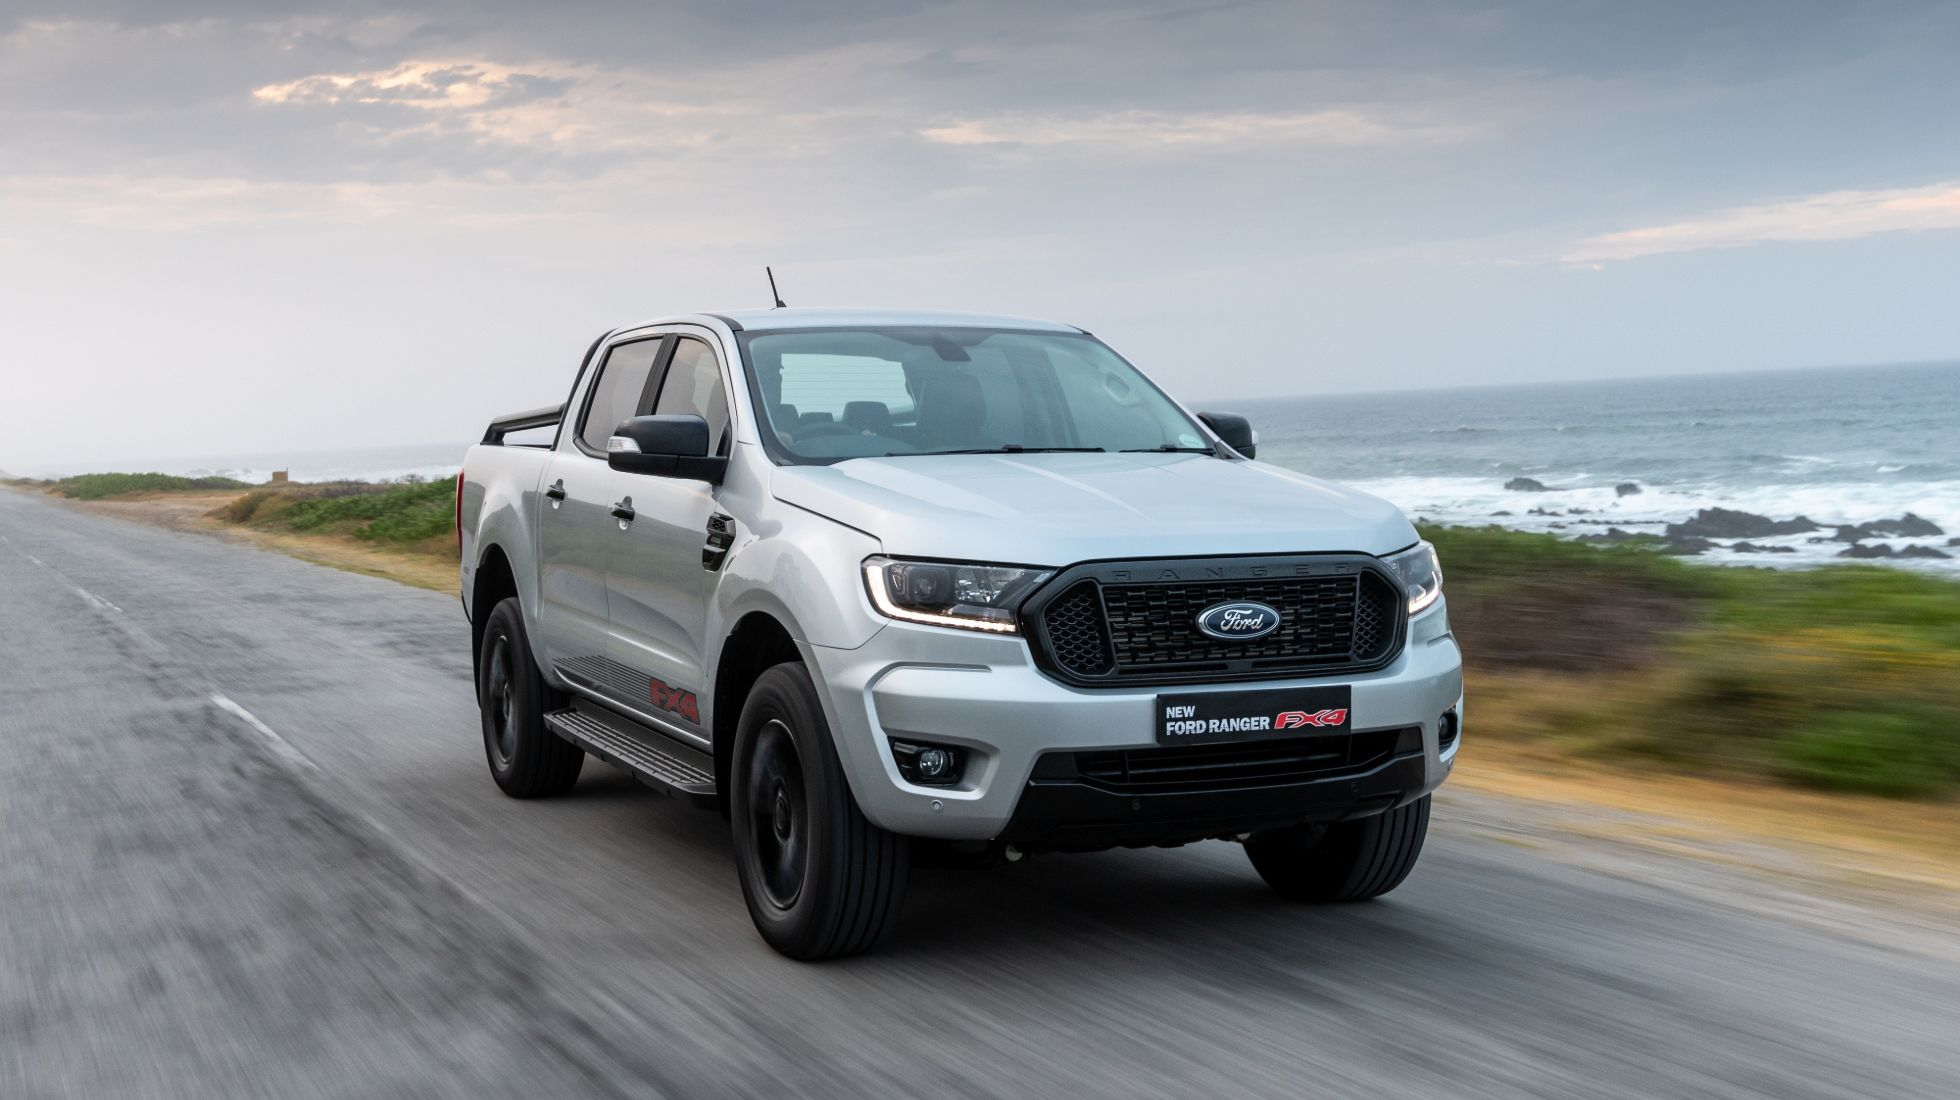 Ford revives the Special Edition FX4 nameplate